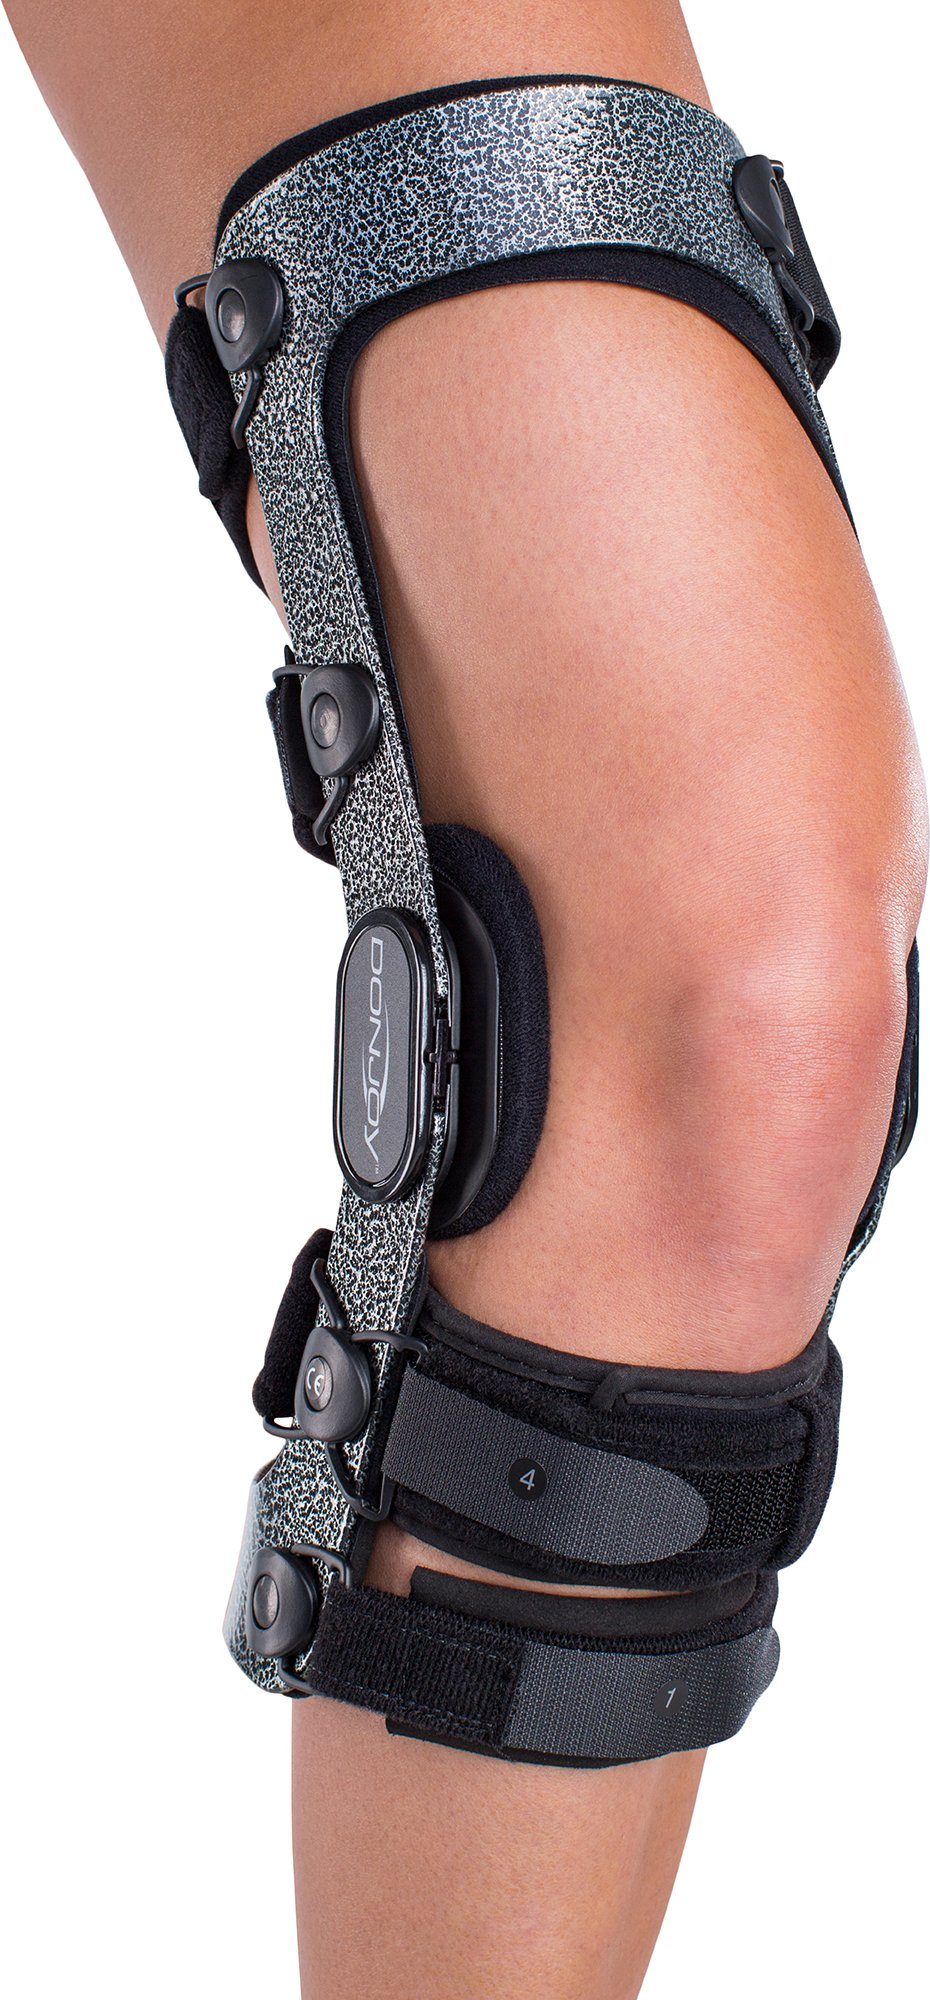 DonJoy Armor Knee Support Brace with Standard Hinge: Short Calf Length, ACL (Anterior Cruciate Ligament), Right Leg, Medium